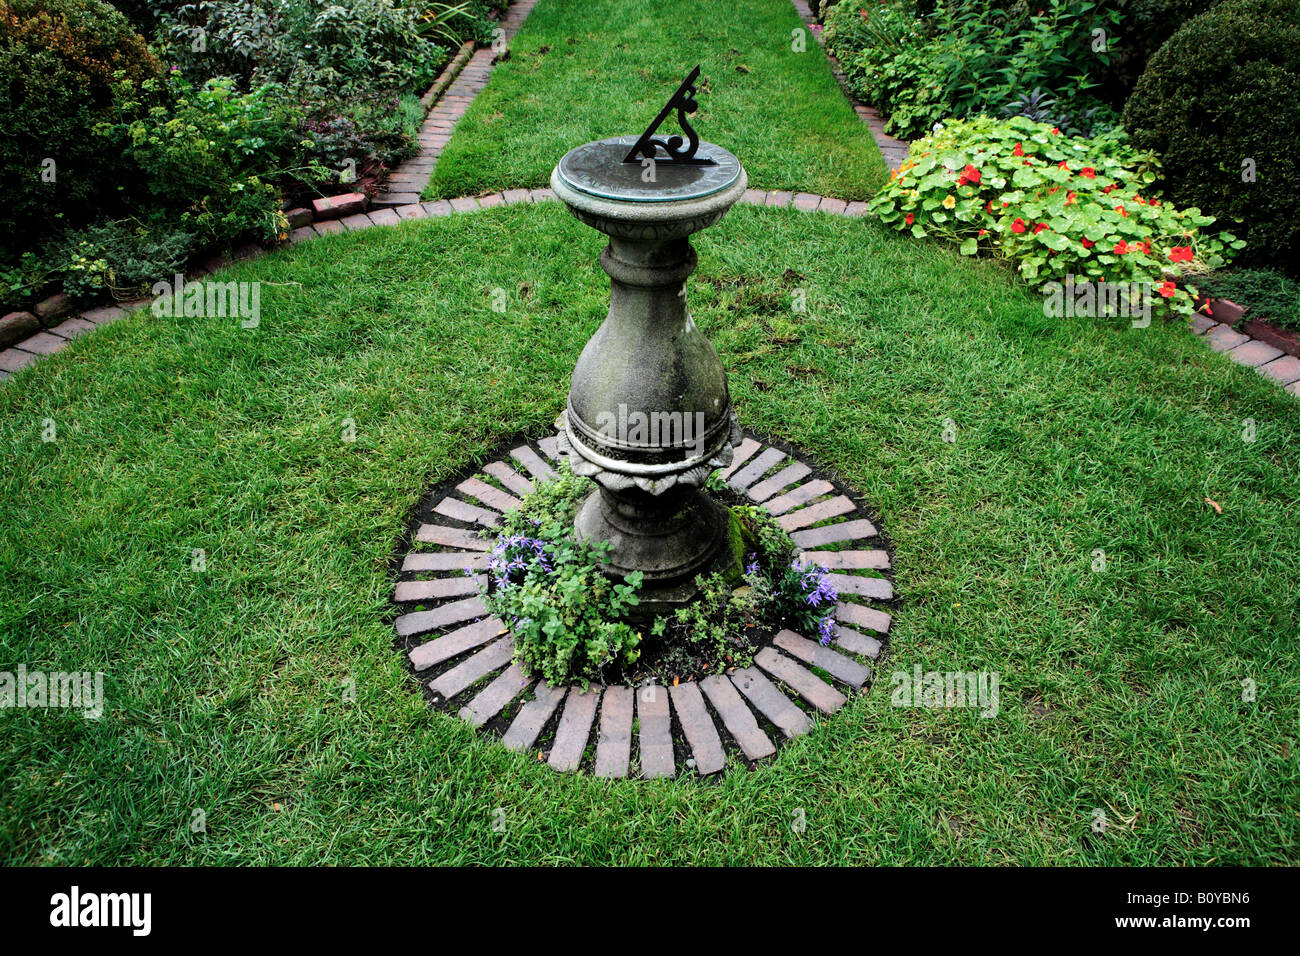 Incroyable SUNDIAL ON A STONE PEDESTAL IN SHAKESPEARE GARDEN DESIGNED BY JENS JENSEN  AND FOUNDED IN 1915 IN THE CHICAGO NORTHERN SUBURB OF